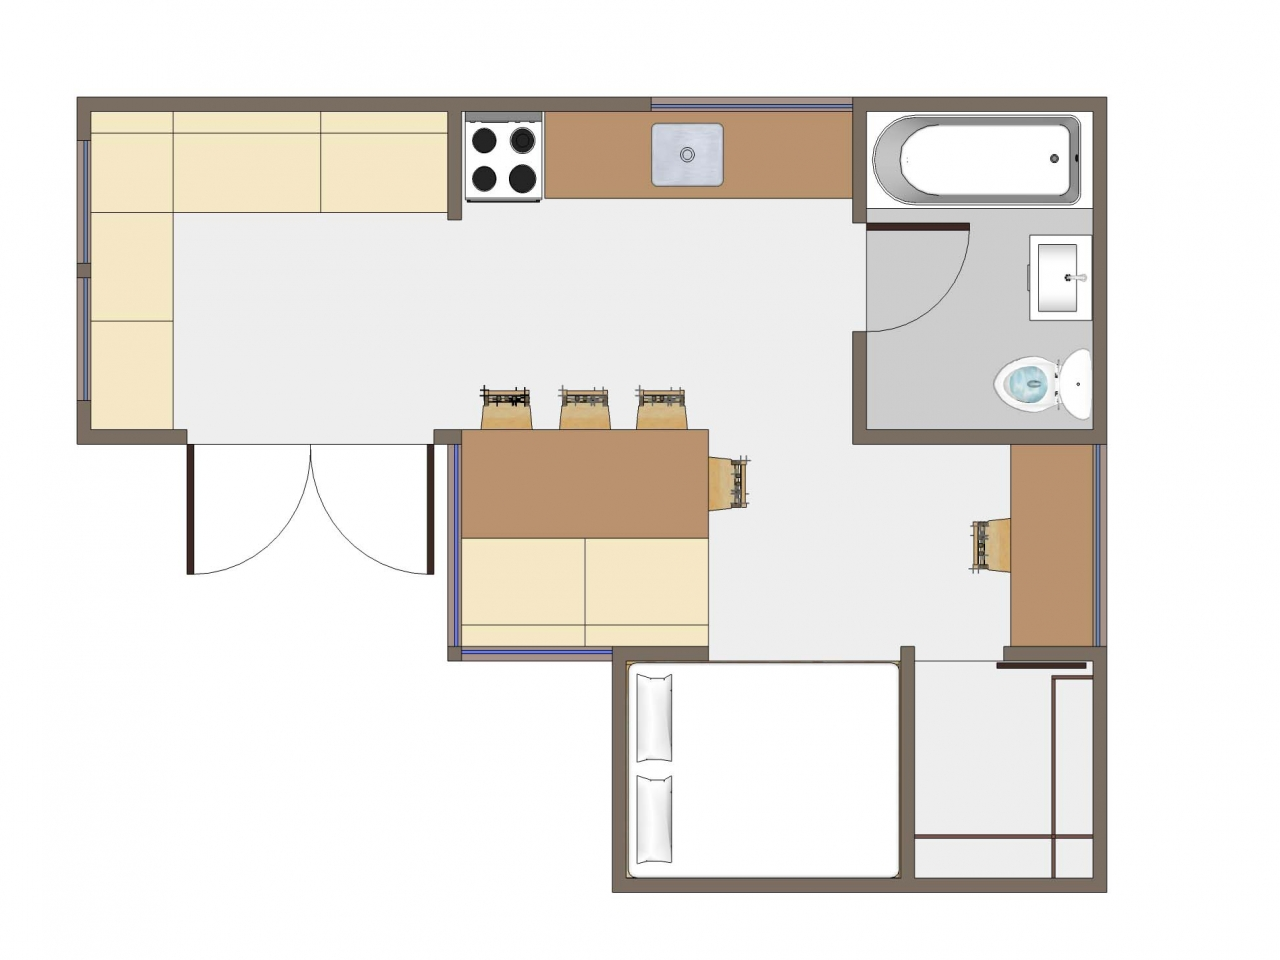 Tiny house floor plans tiny houses pictures inside and out for House plans with pictures inside